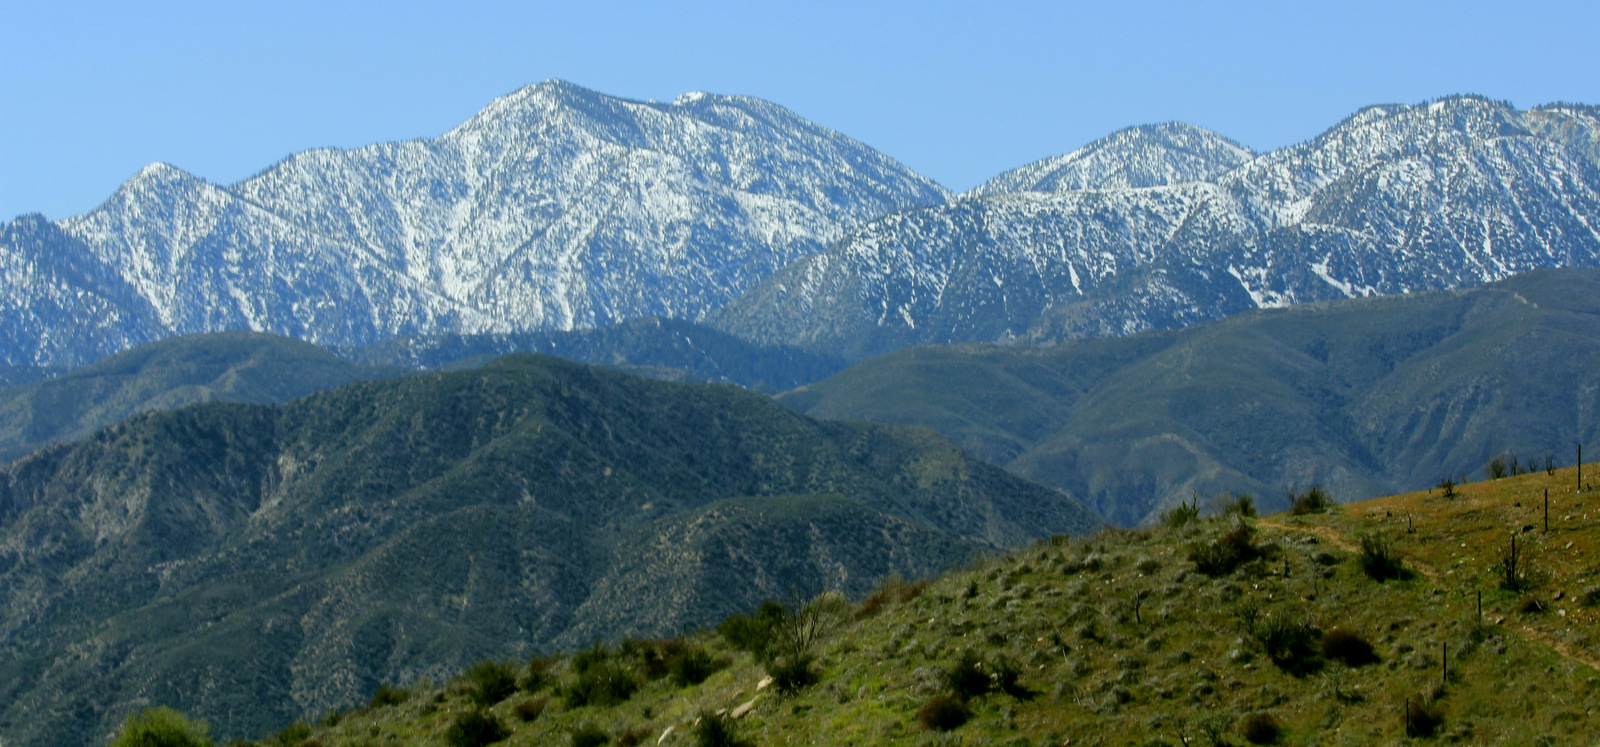 View of the San Gabriel Mountains from Cajon Pass. (Photo: Wikimedia Commons)